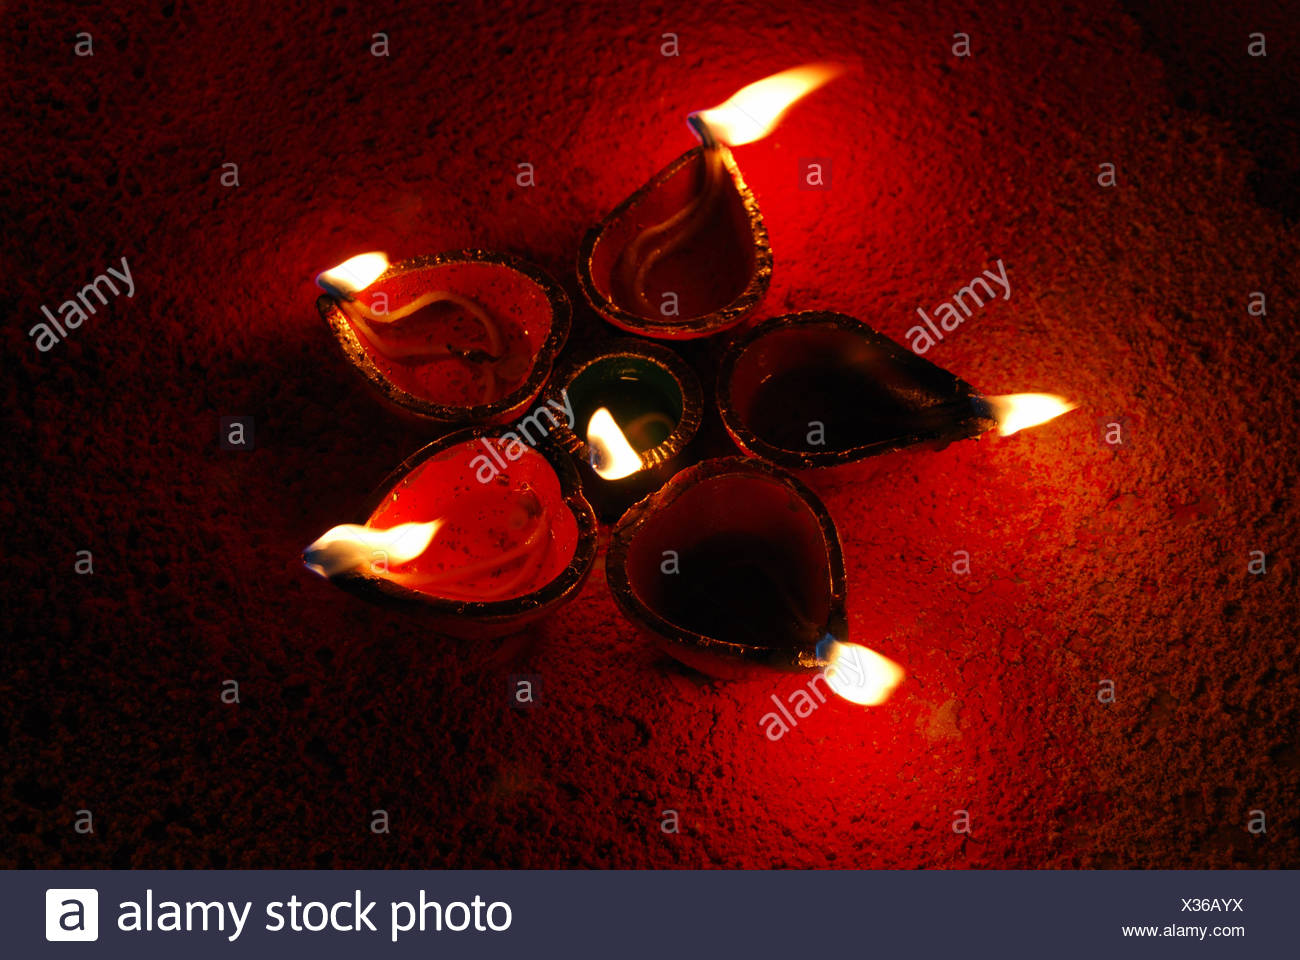 A design made by earthen lamp on the occassion of Diwali, the festival of light, India - Stock Image